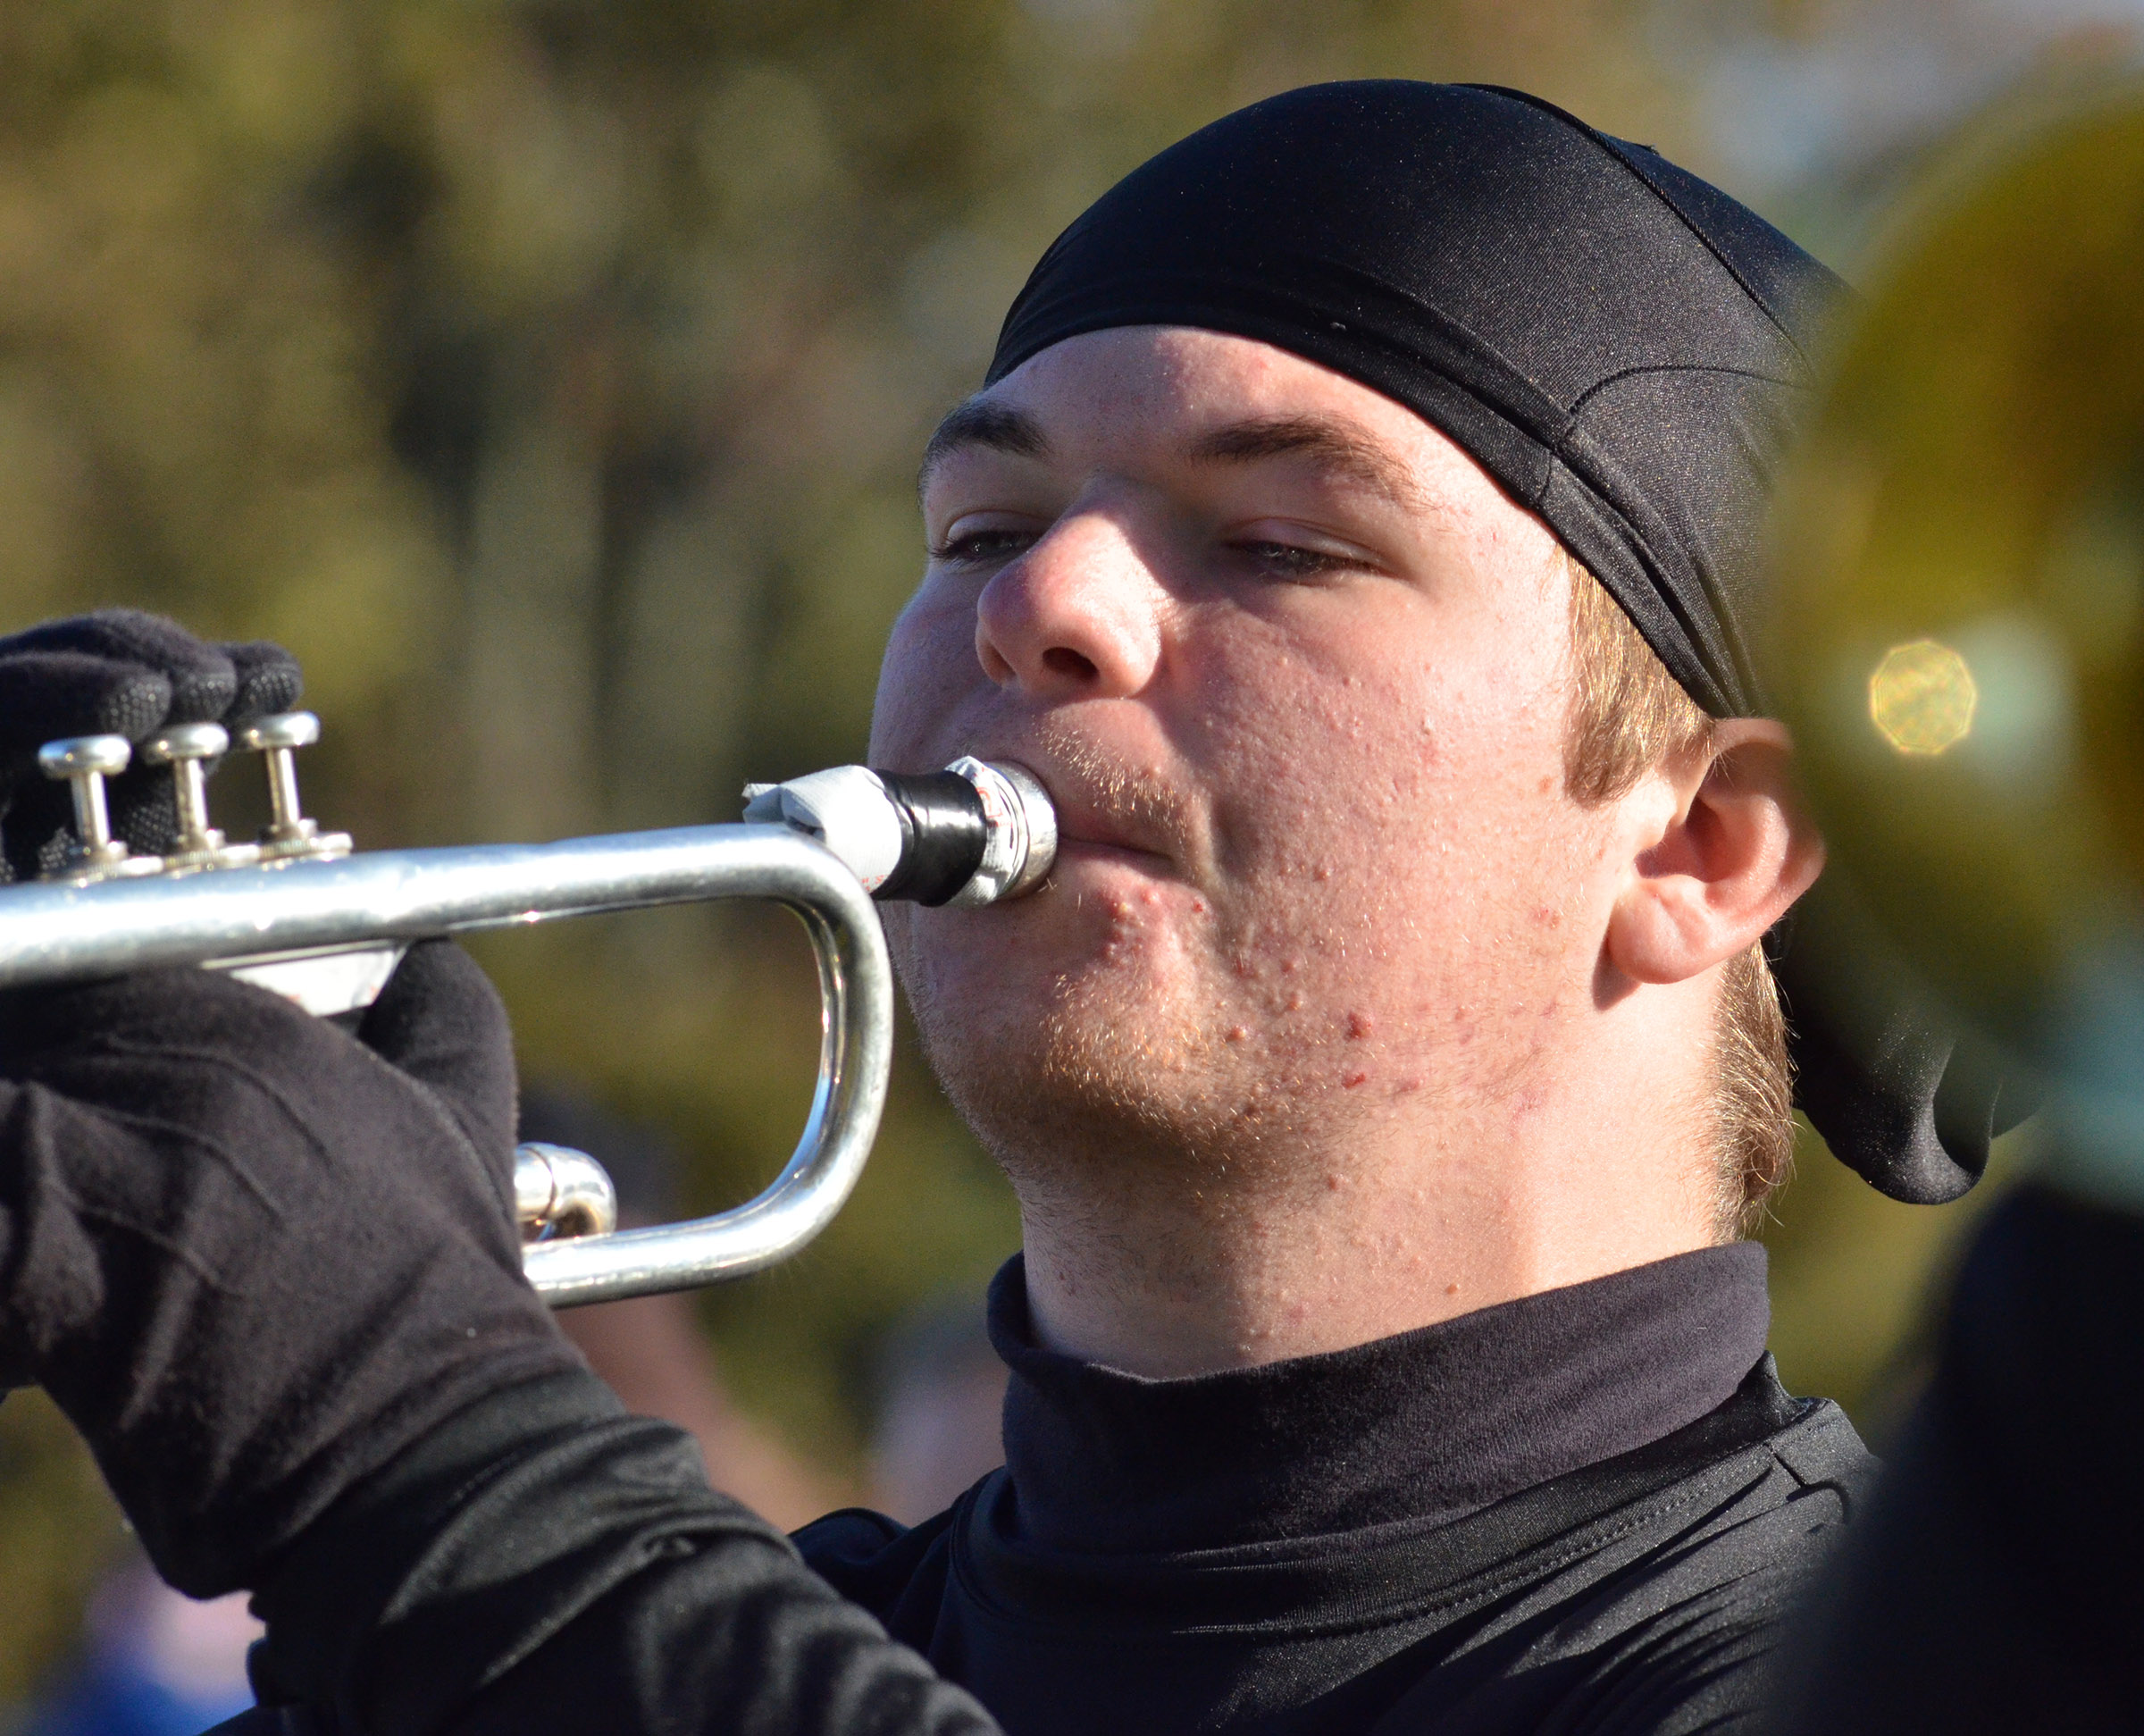 CHS junior Josh Dooley plays the trumpet.